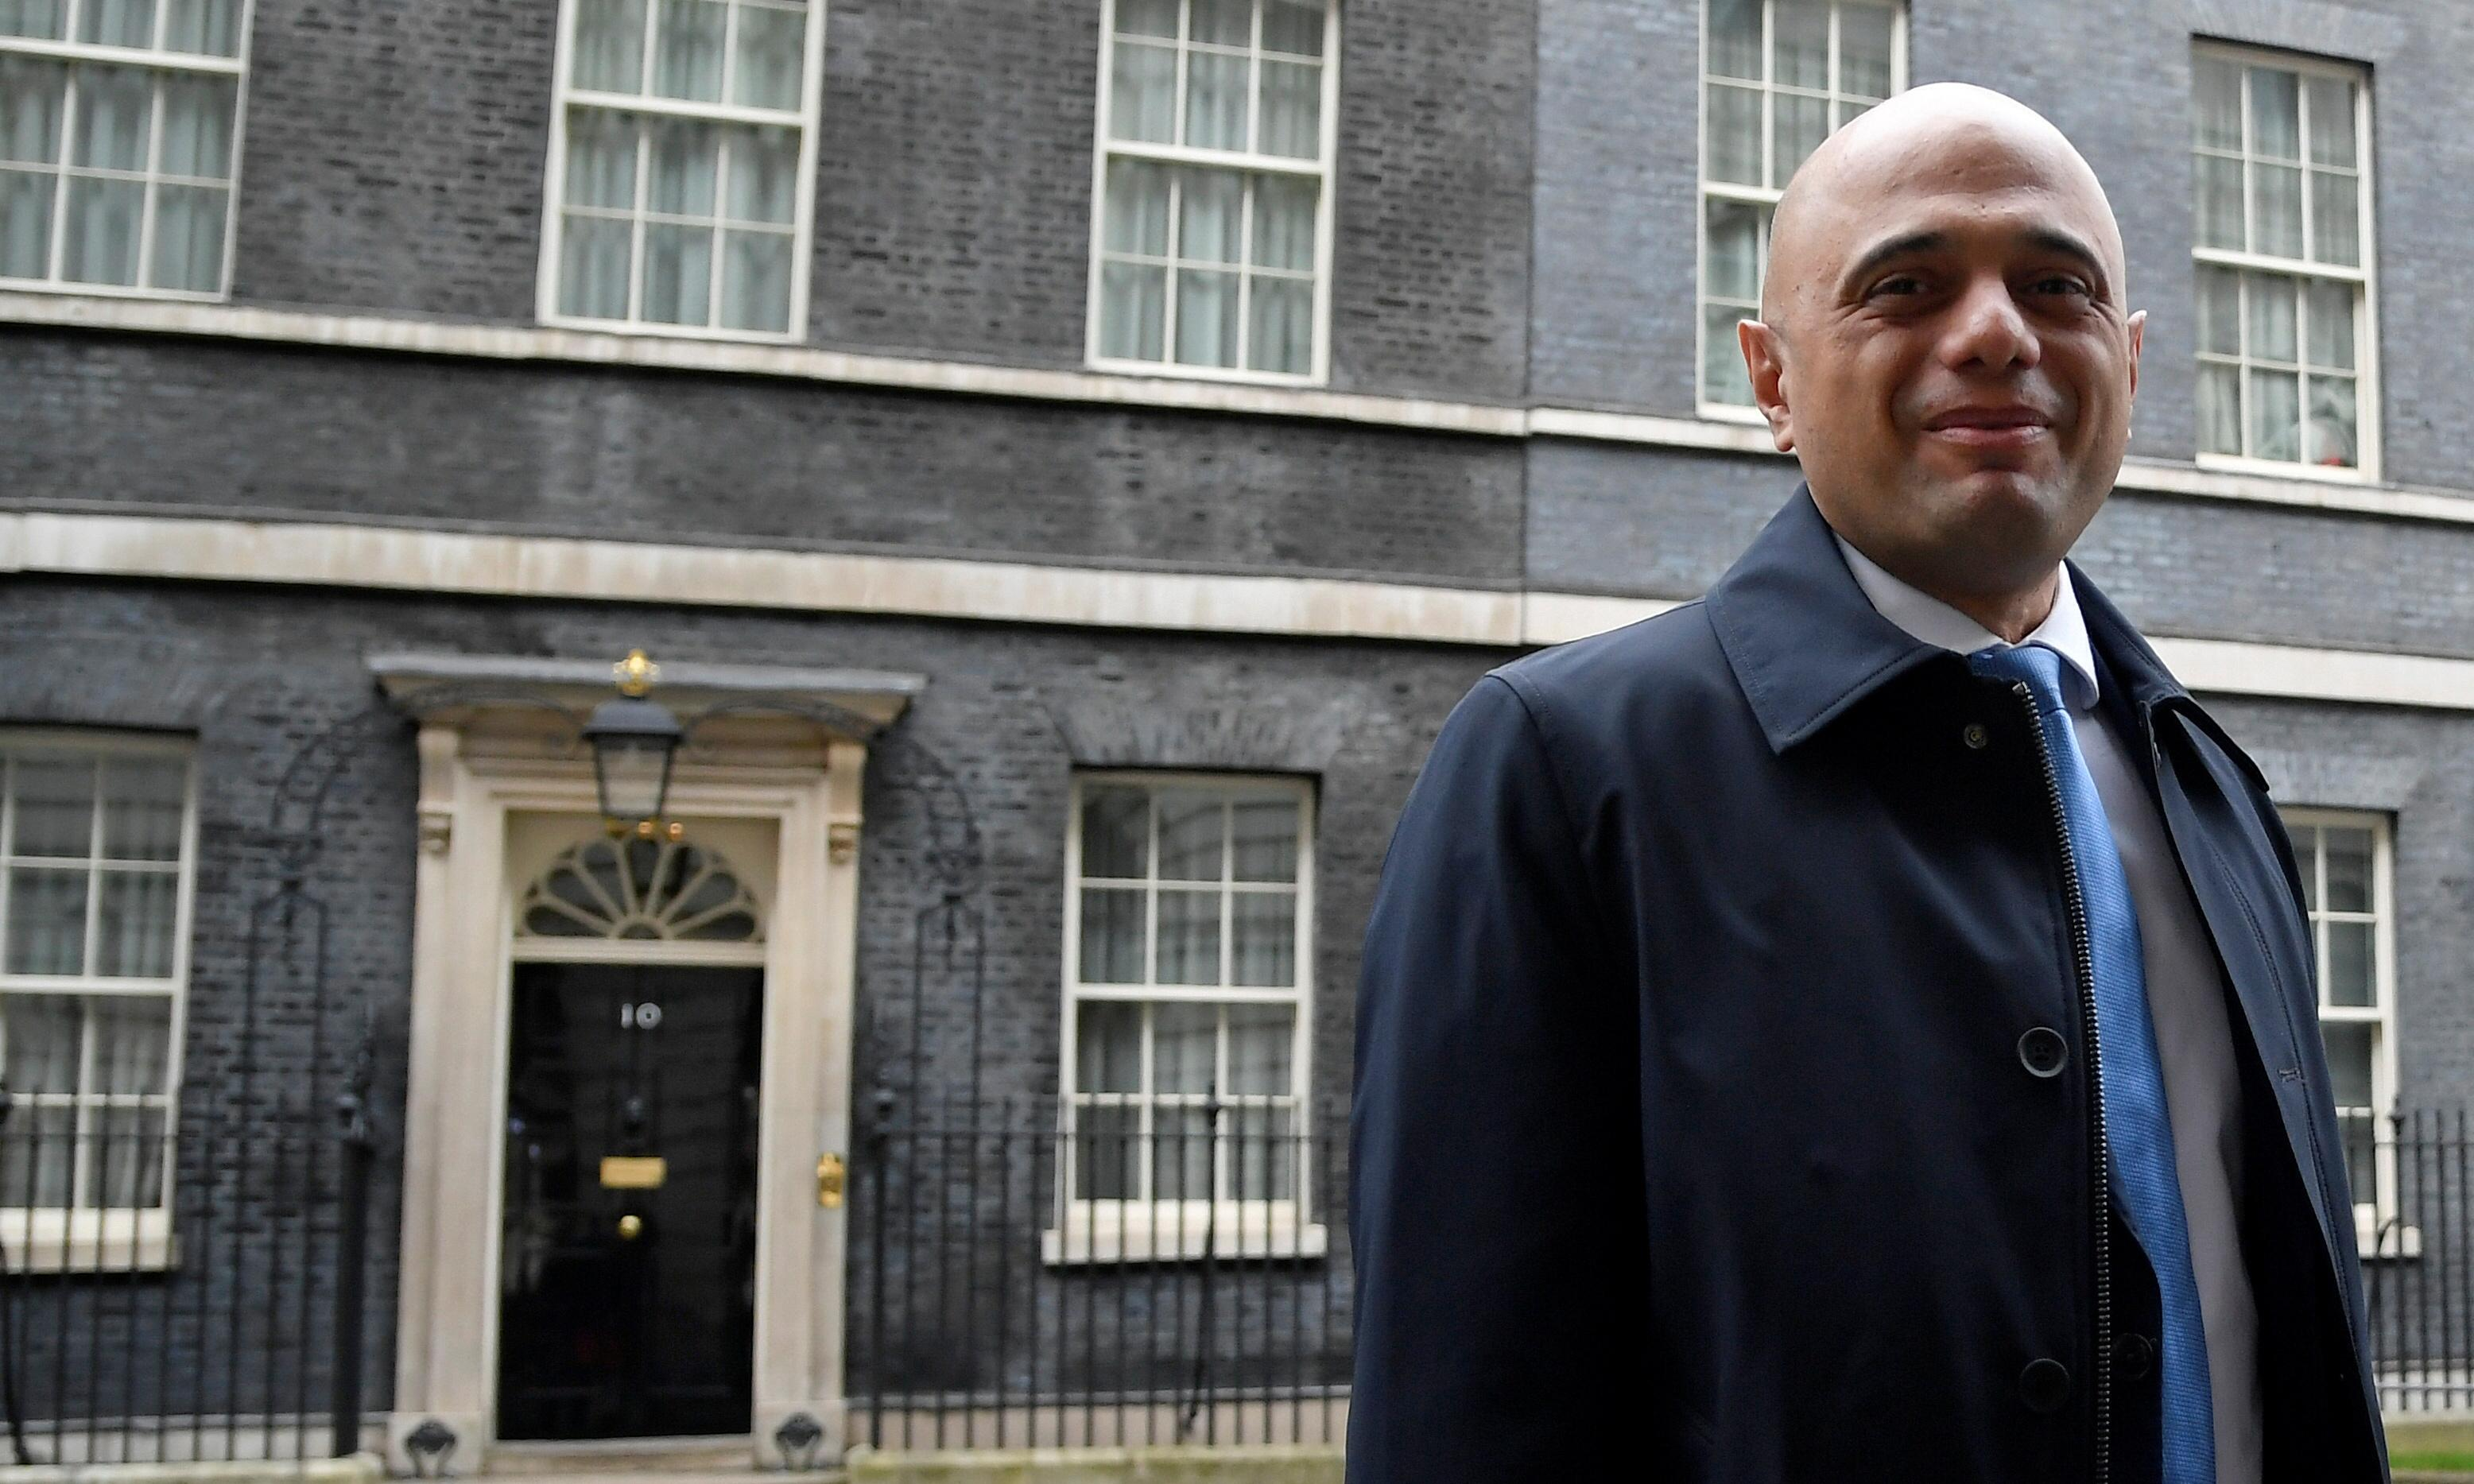 Sajid Javid's Brexit posturing shows he doesn't know or care what his words mean